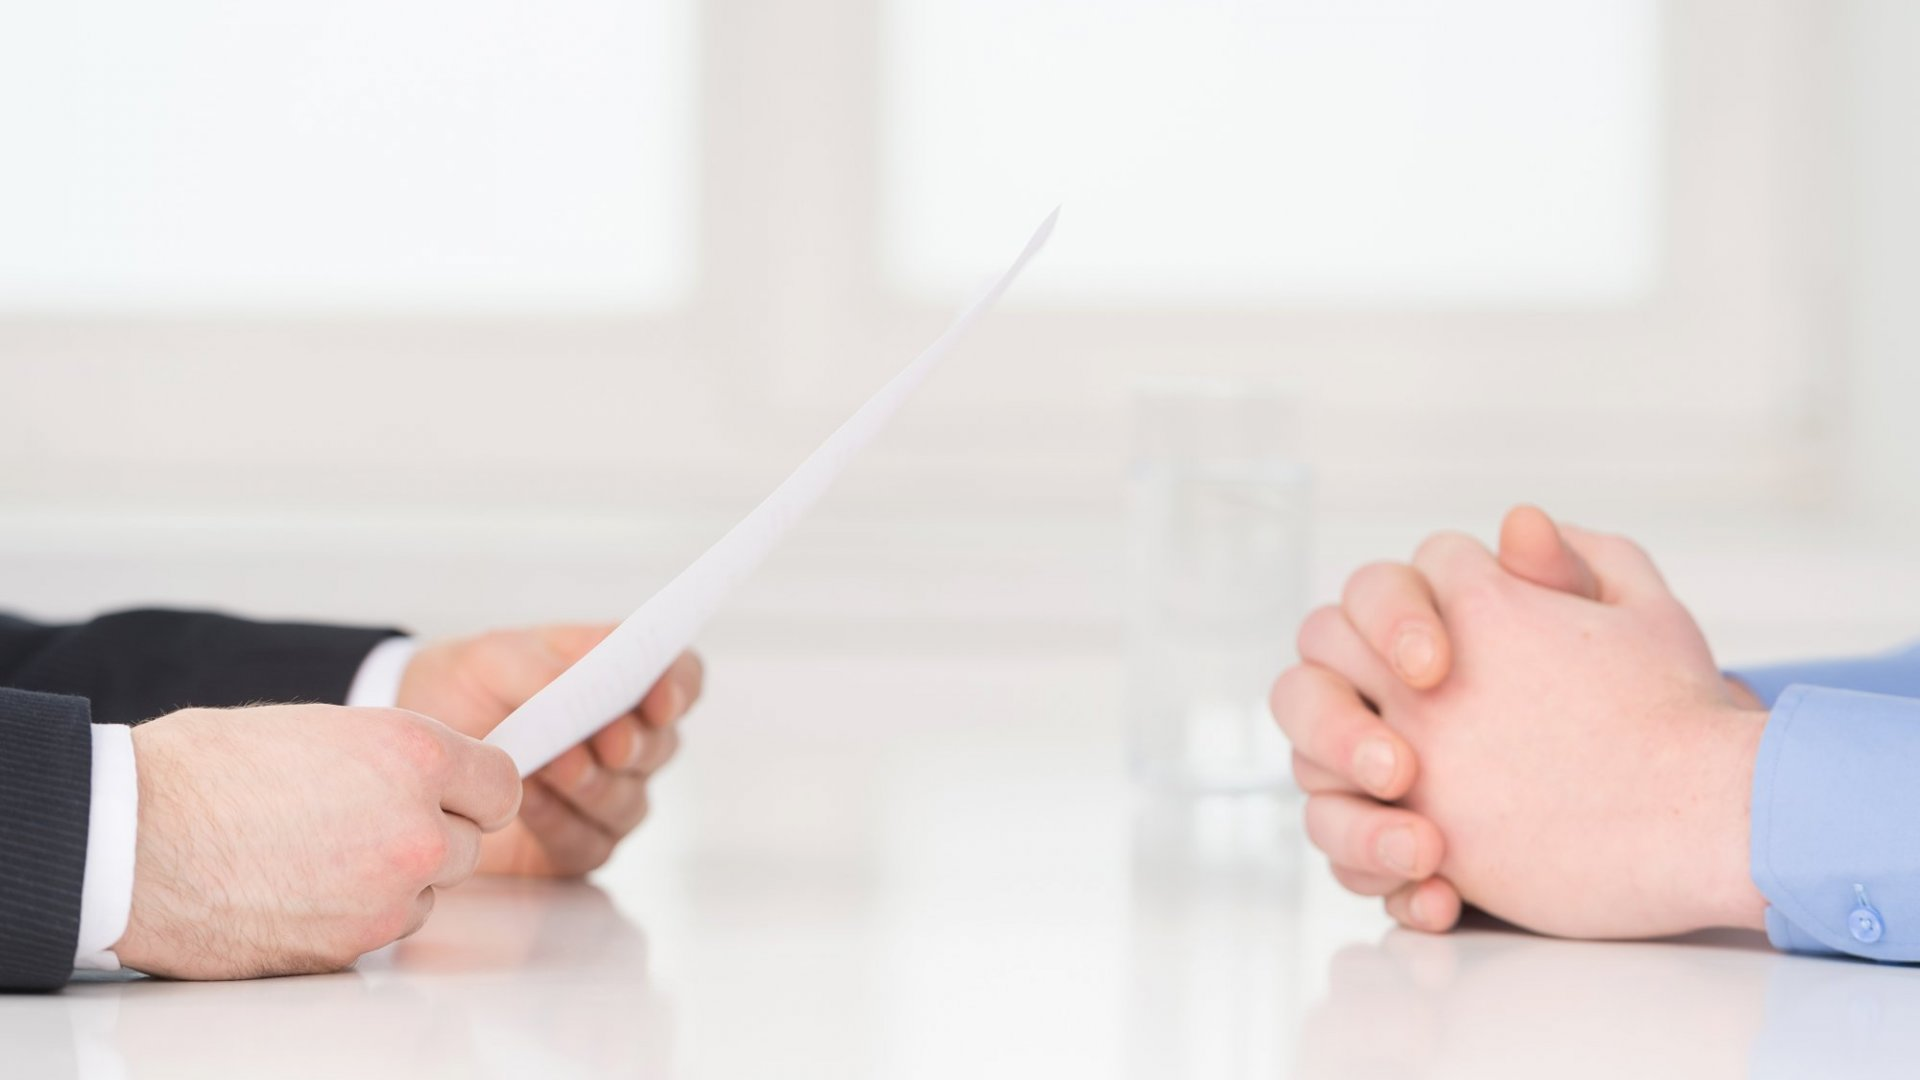 73 Percent of Job Seekers Are Stressed (The Other 27 Percent Are Likely Getting All The Second Interviews)